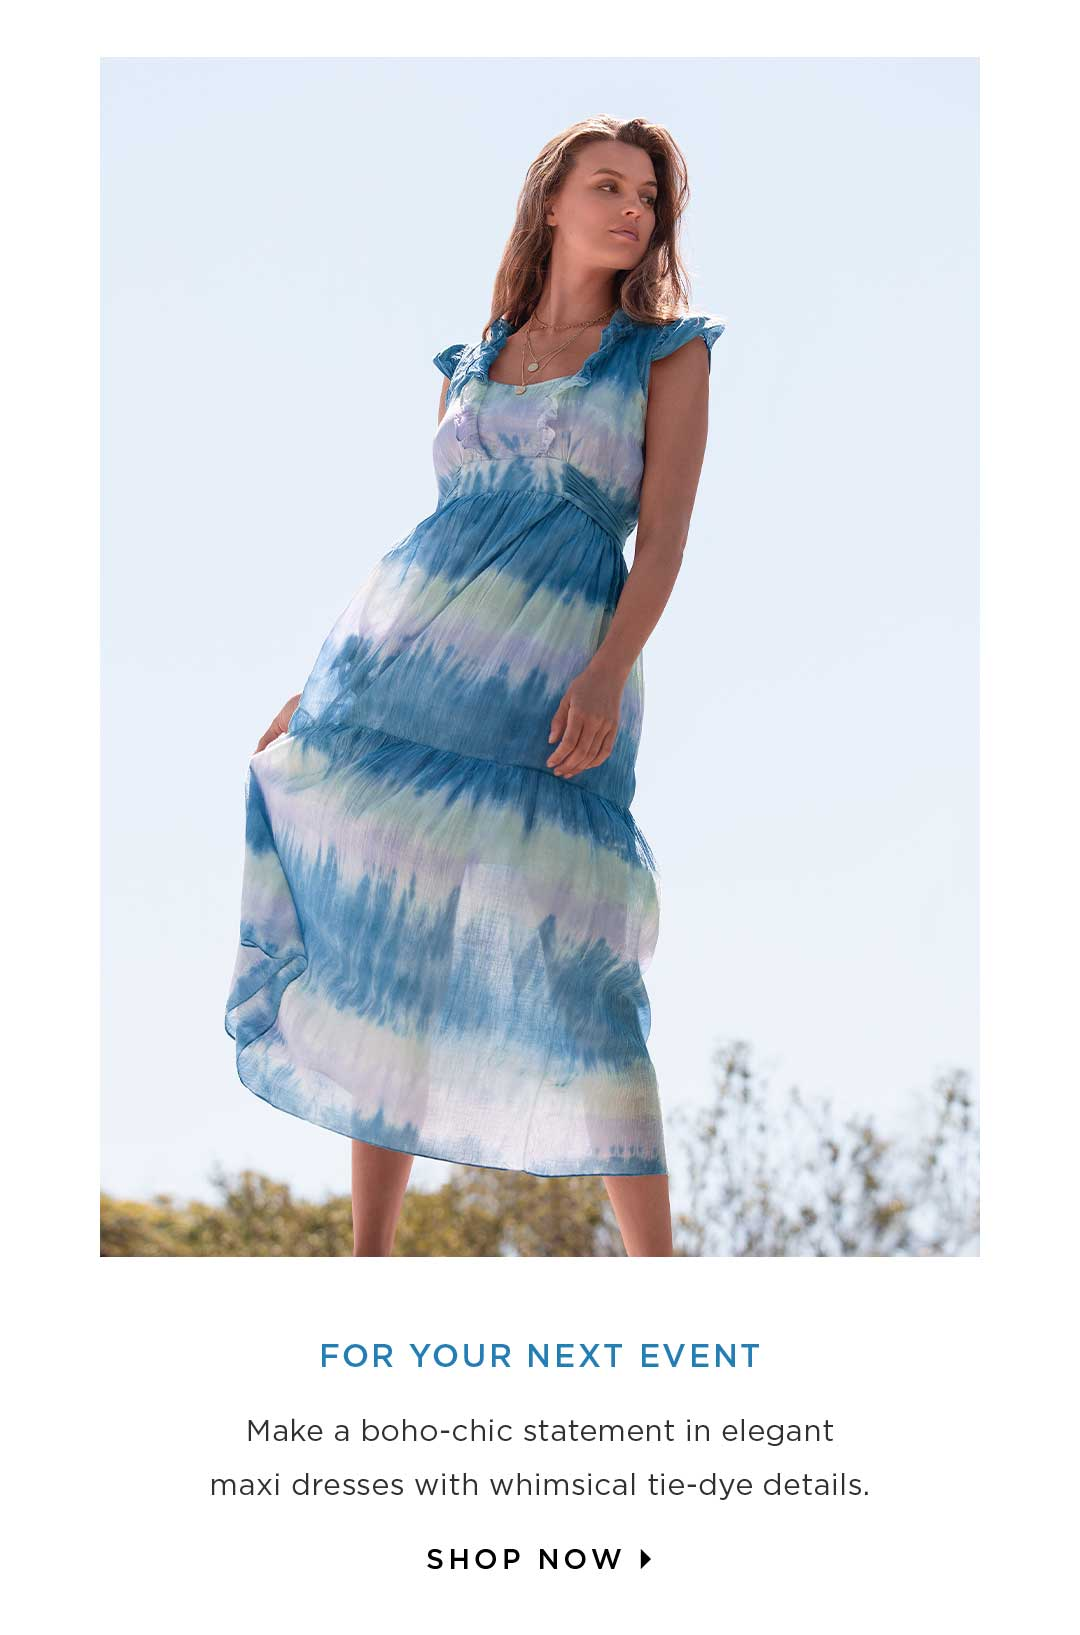 For Your Next Event - Make a boho-chic statement in elegant maxi dresses with whimsical tie-dye details. Shop now